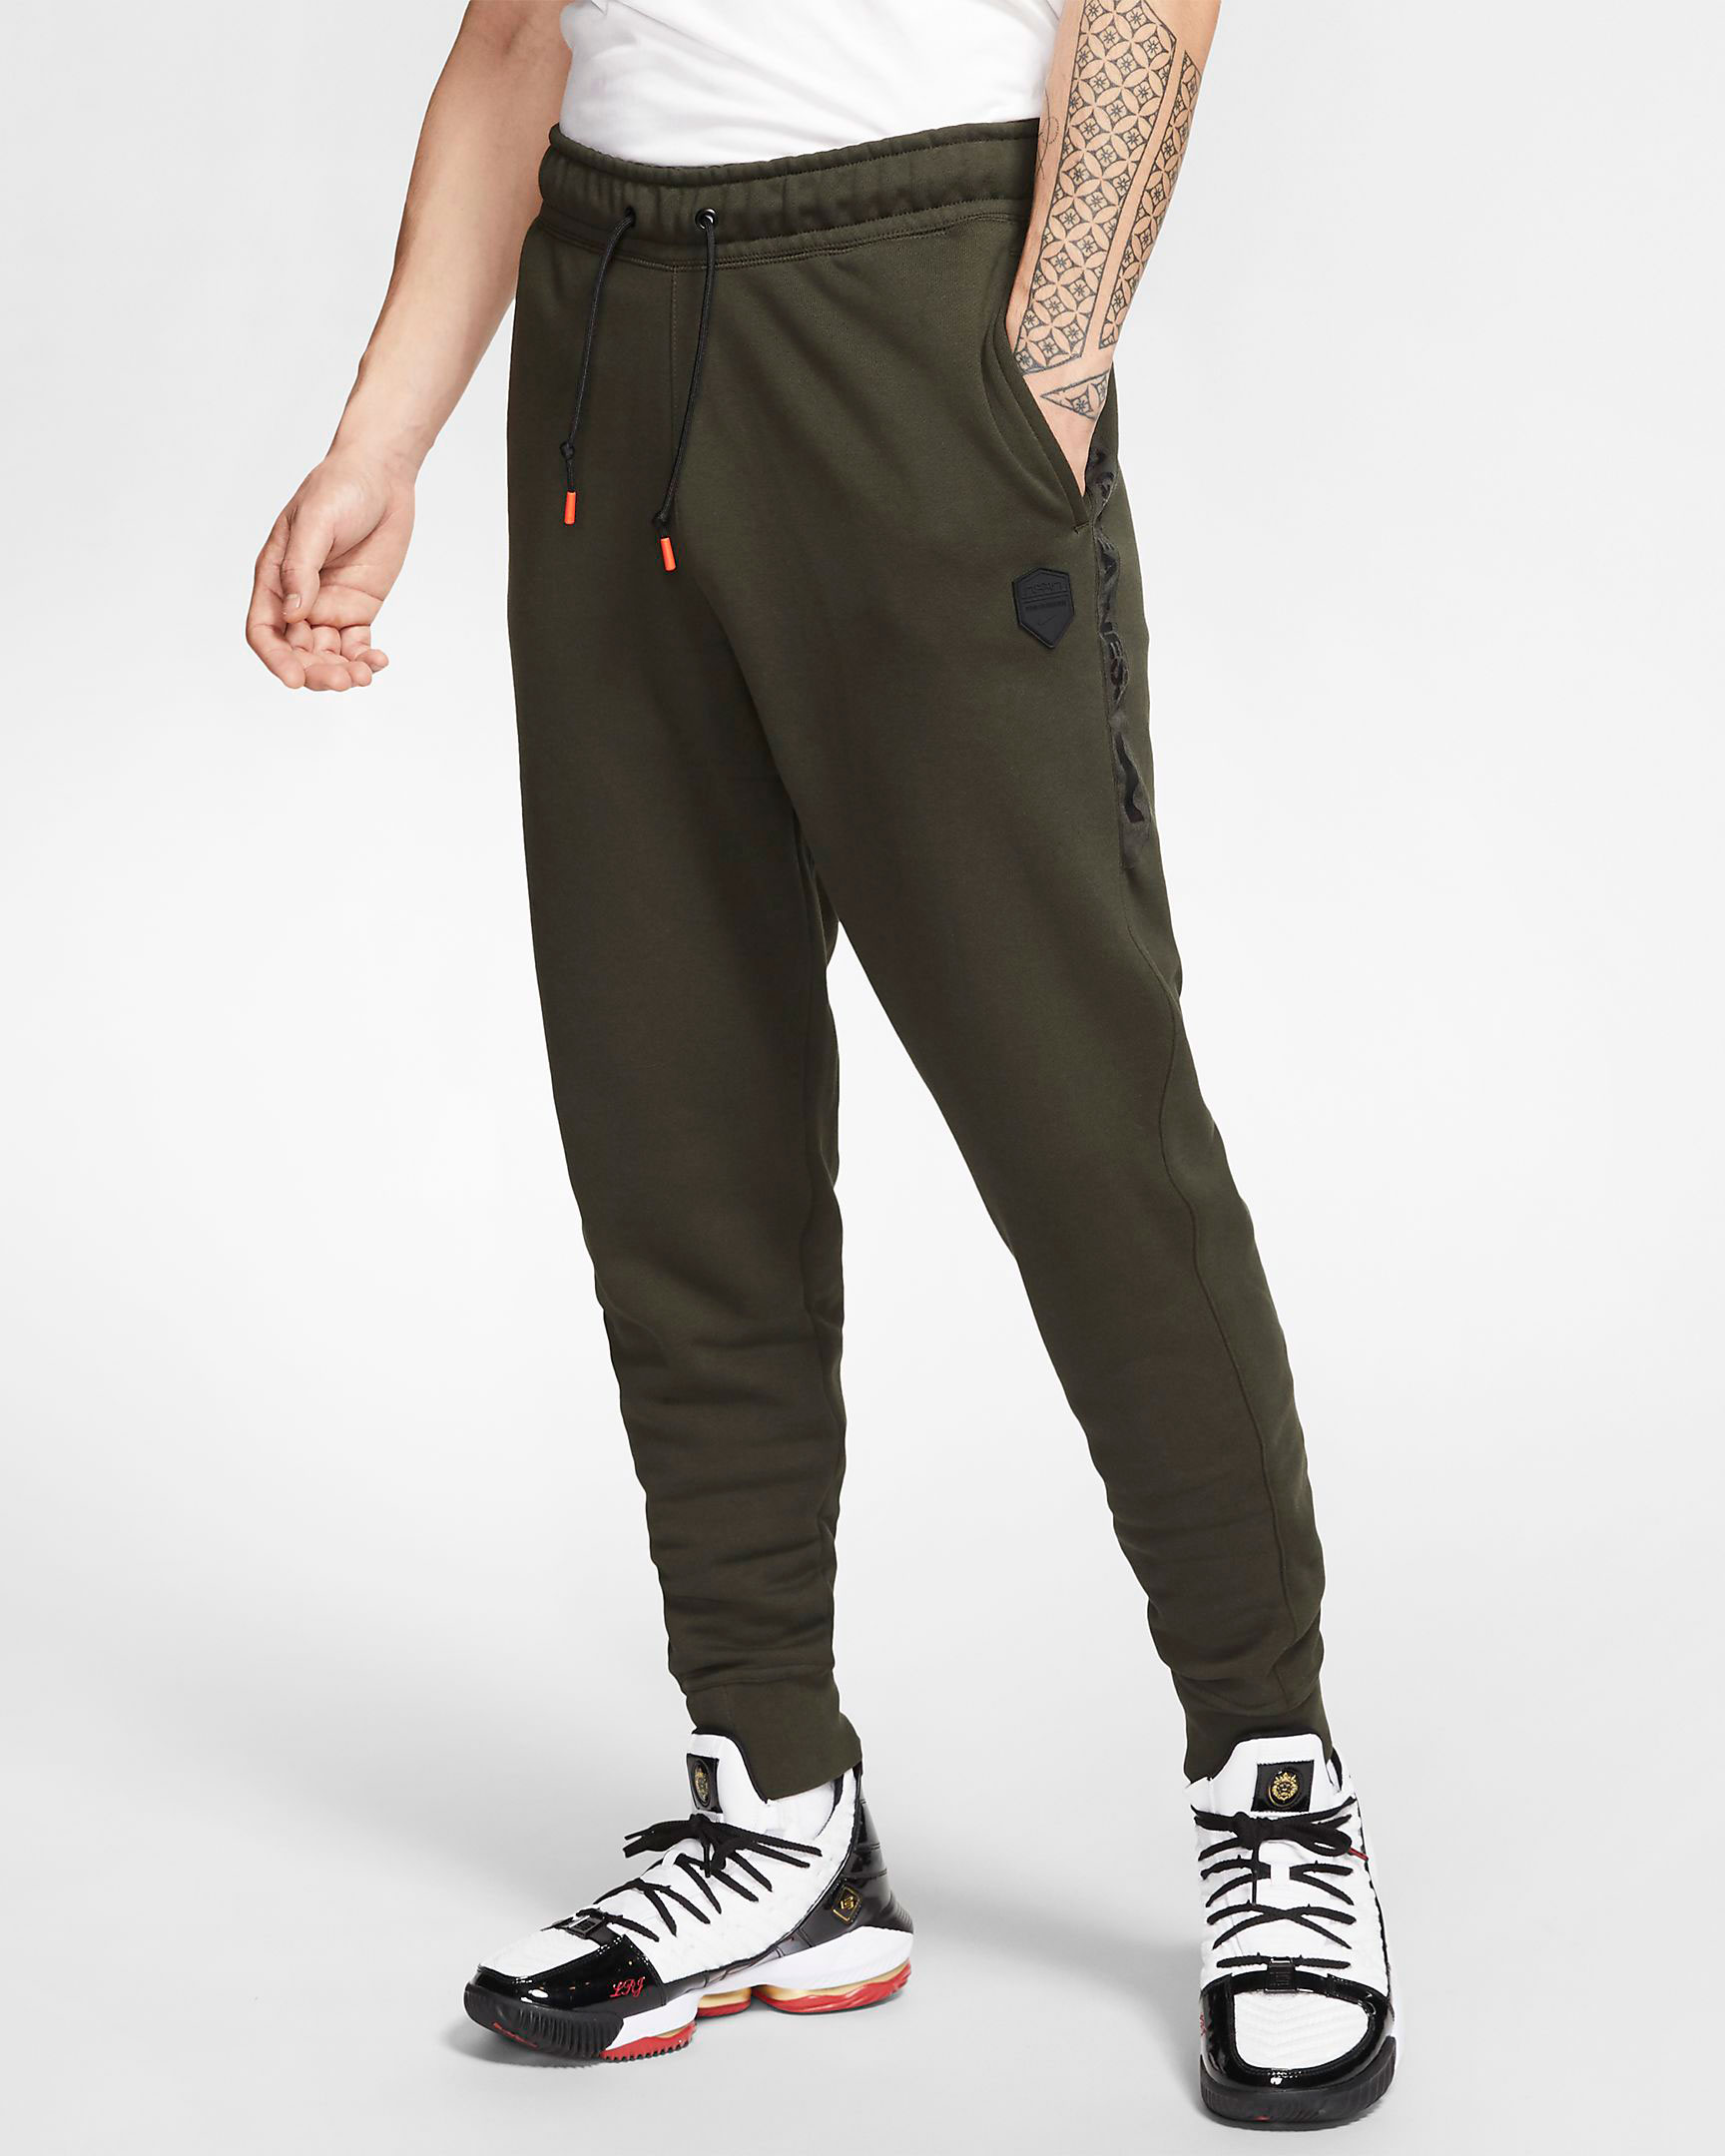 nike-lebron-17-pants-green-1